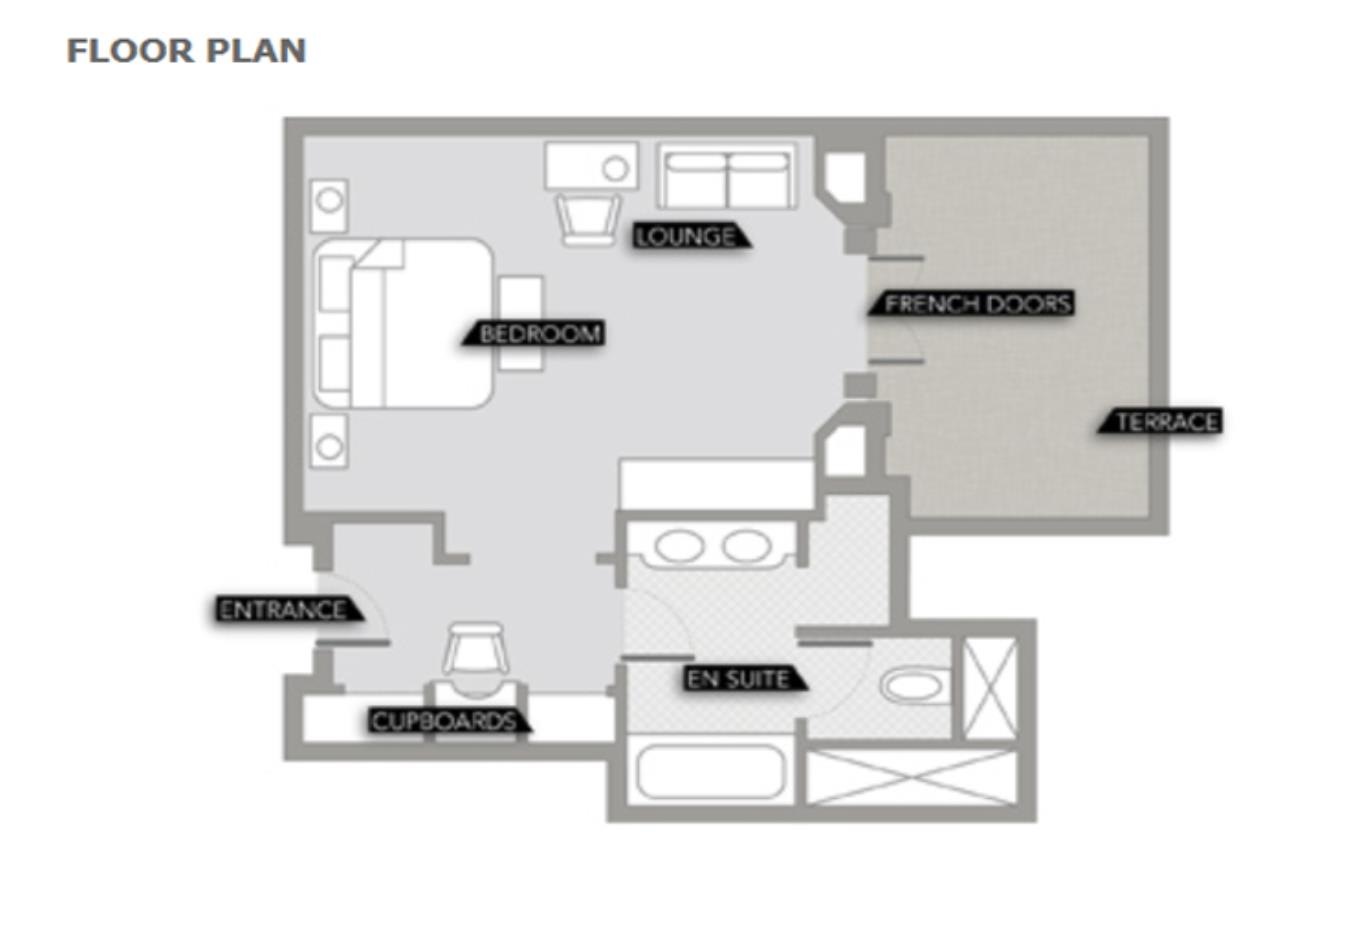 Rooftop Terrace Floorplan